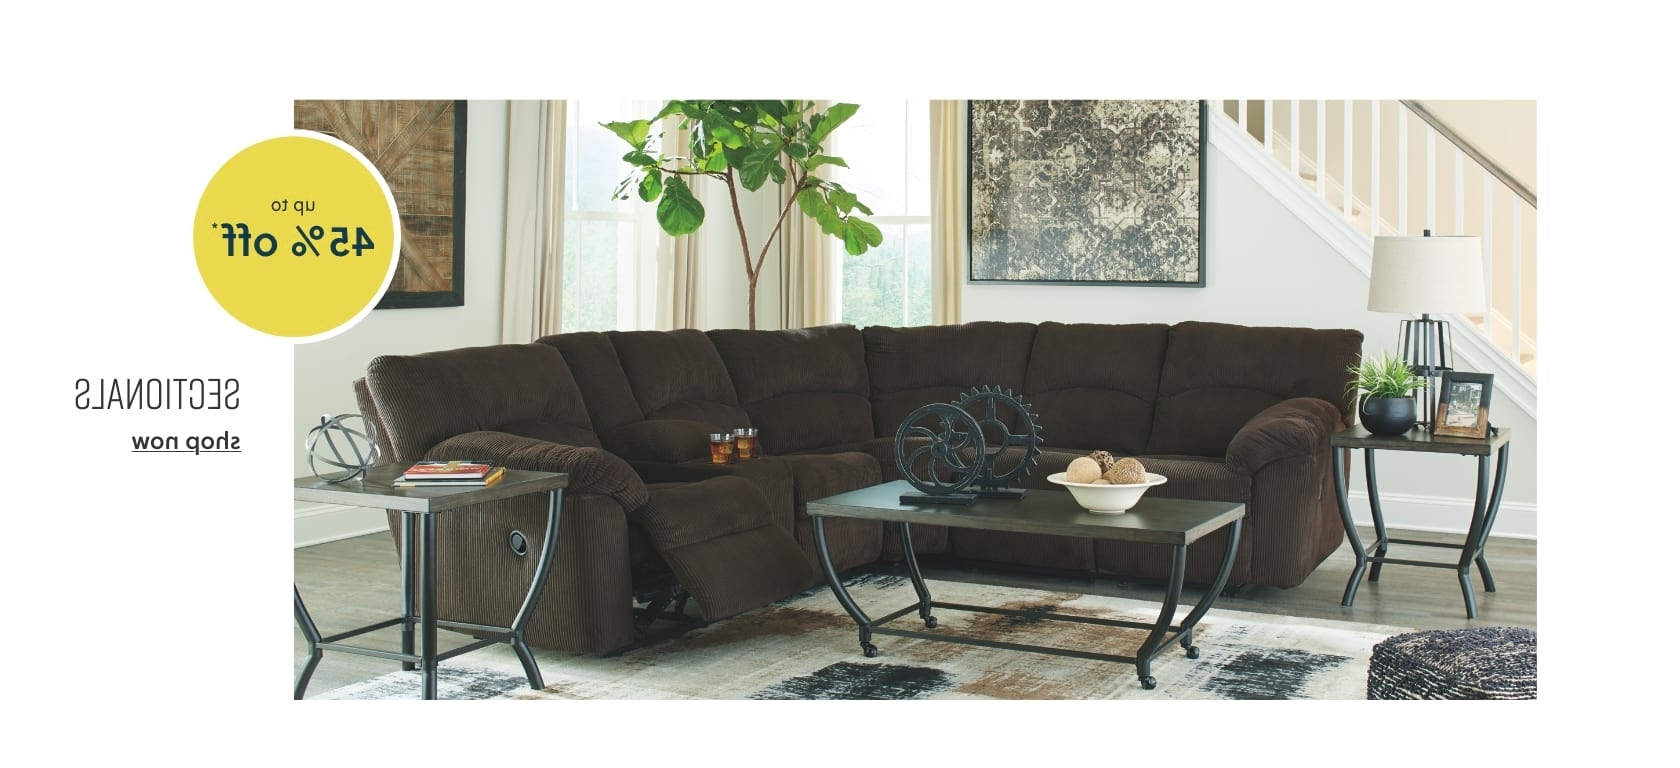 Home Furniture & Decor Within Murfreesboro Tn Sectional Sofas (View 4 of 15)